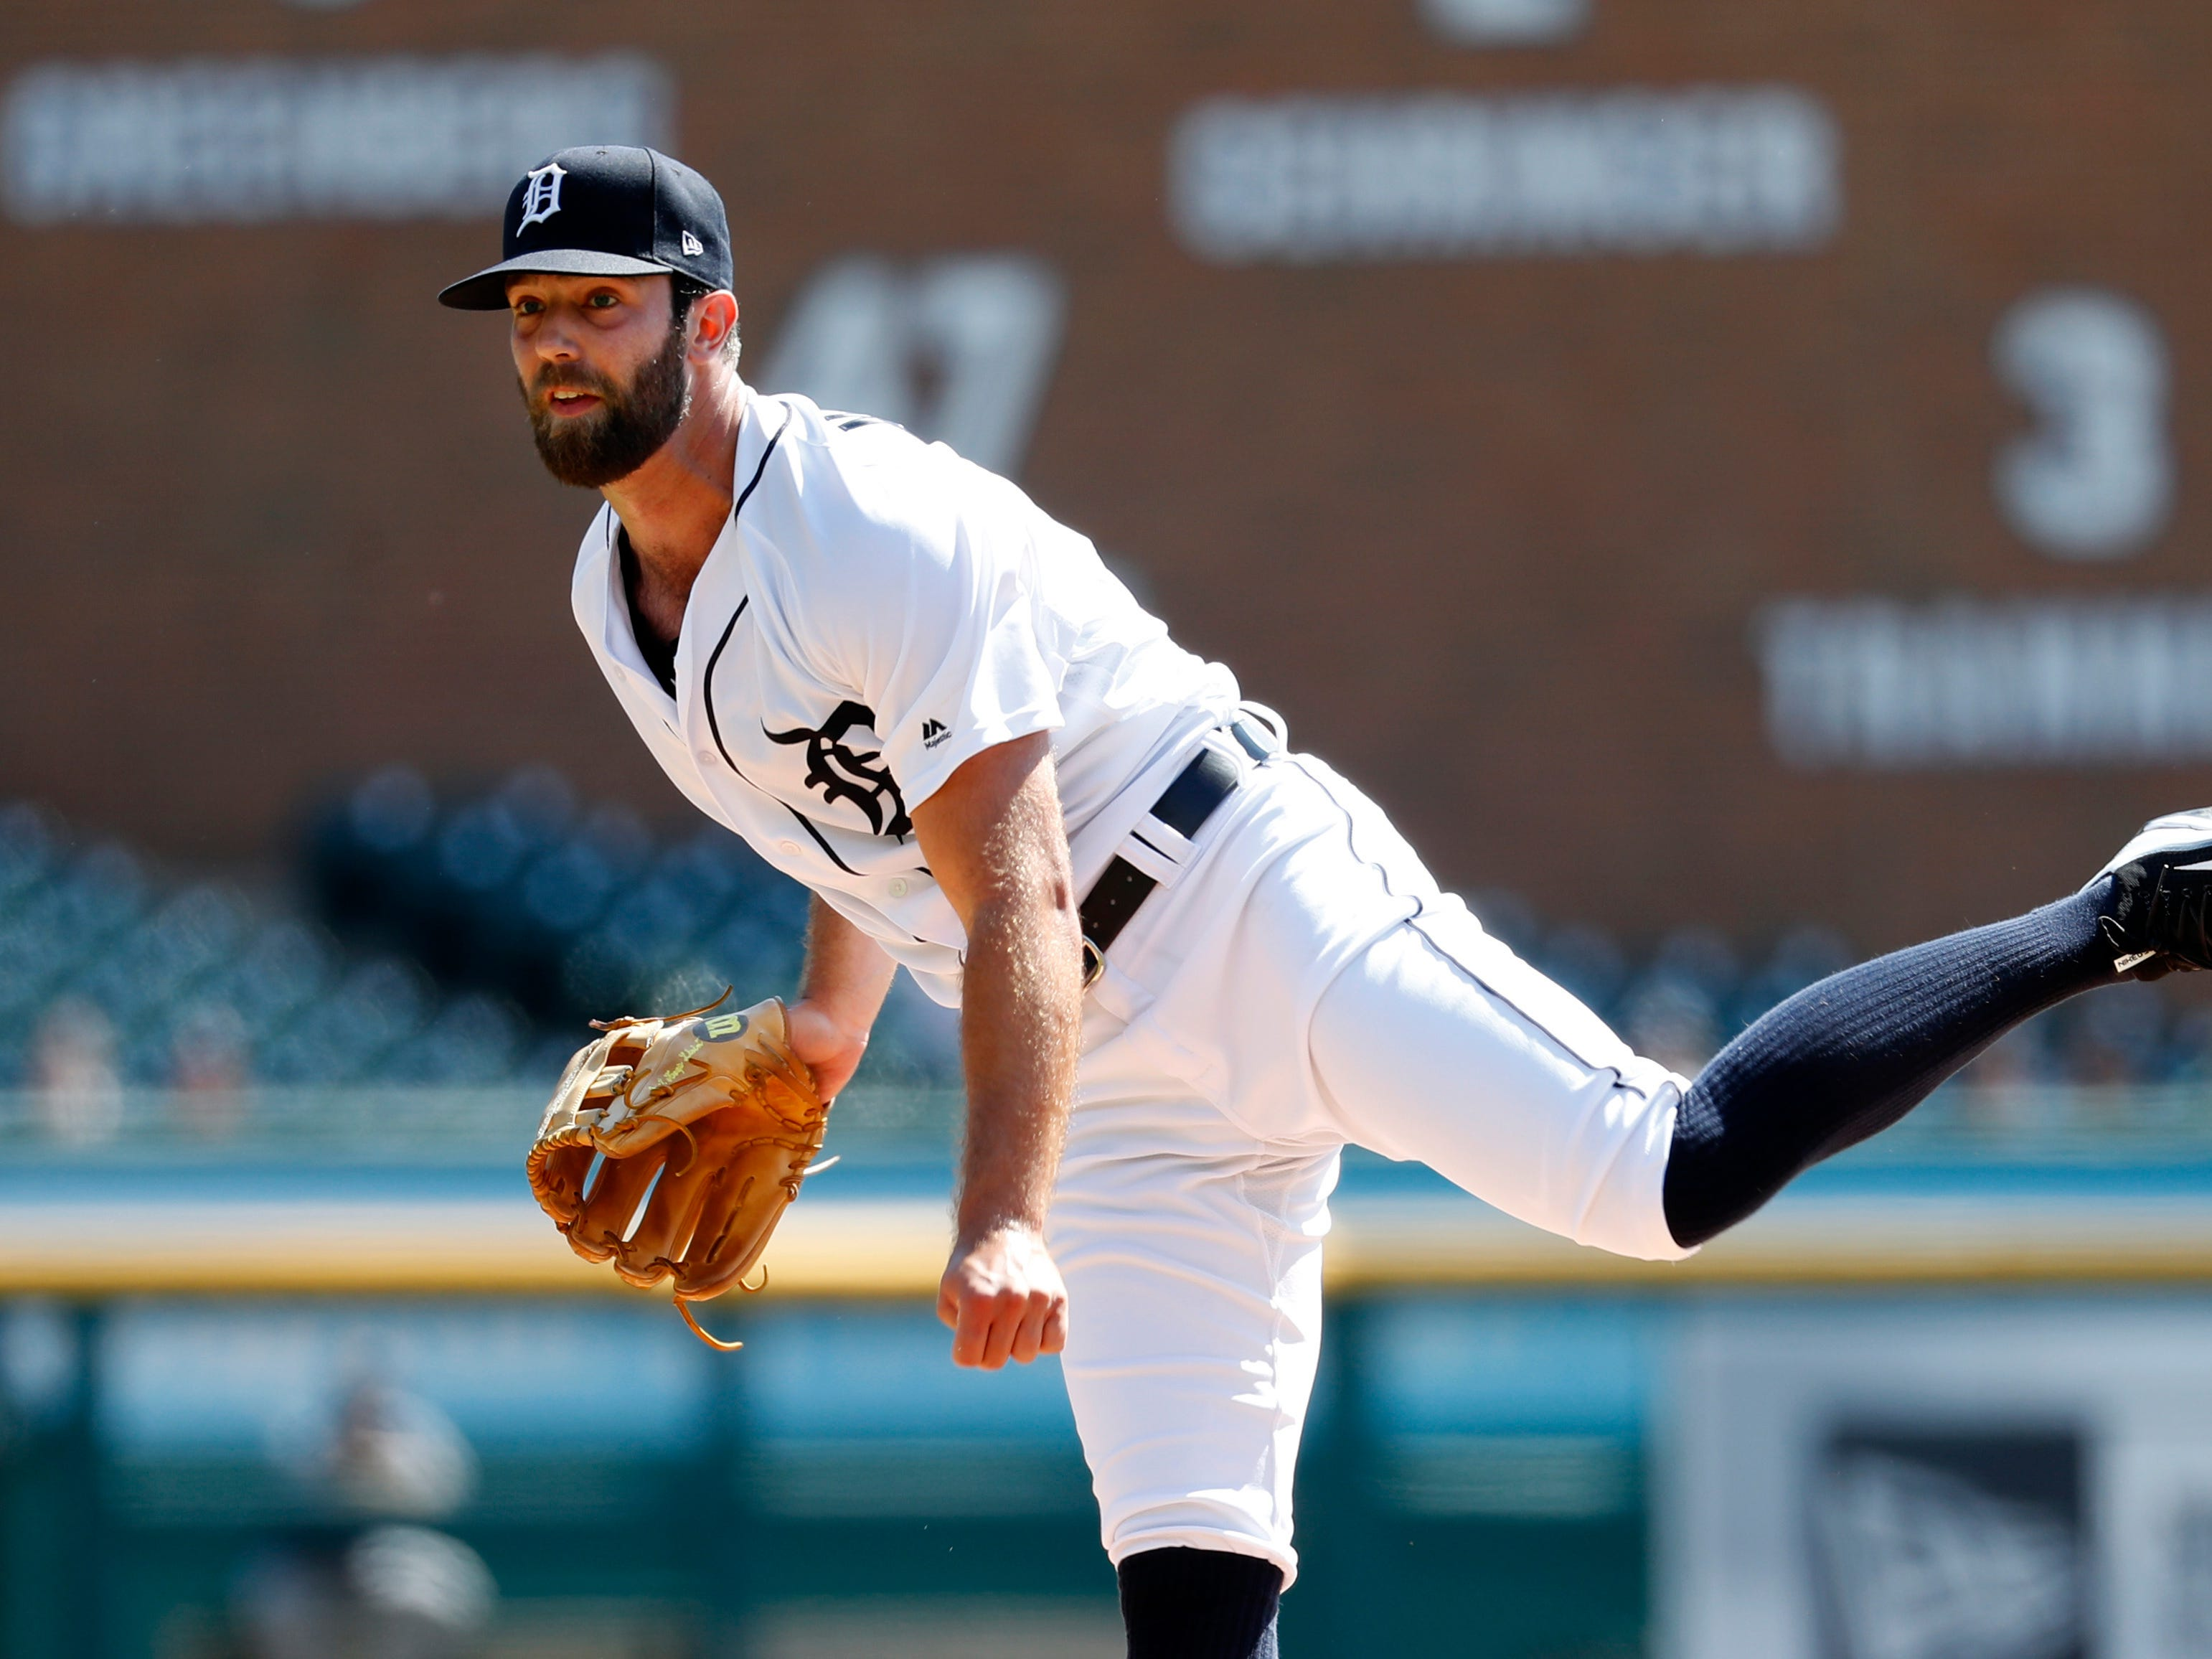 Tigers pitcher Daniel Norris throws in the first inning Wednesday, Sept. 12, 2018, at Comerica Park.